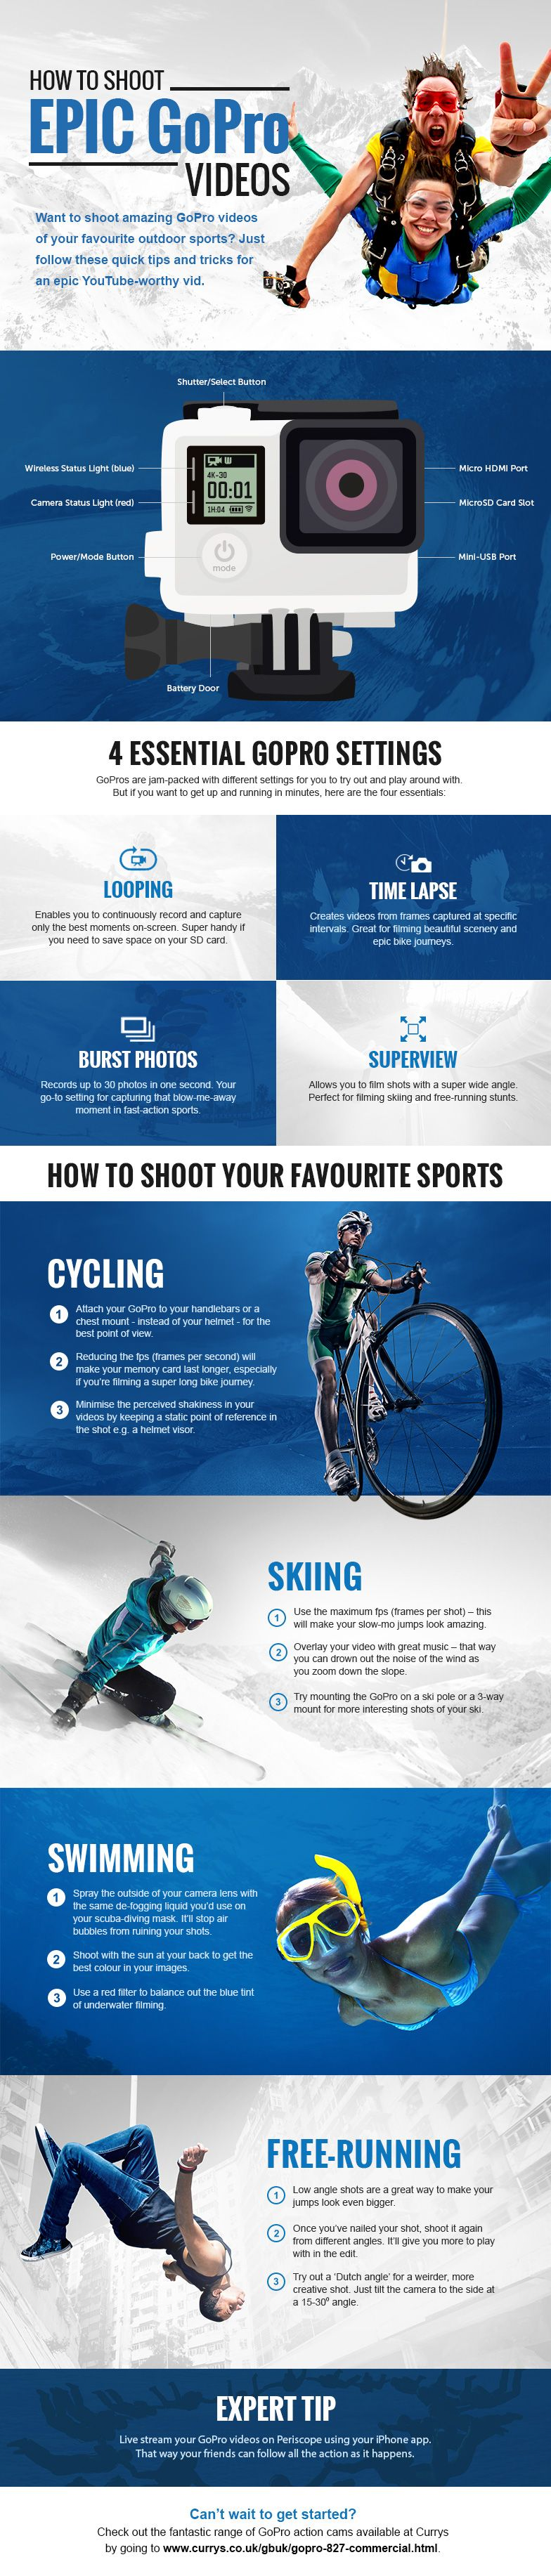 Check out our handy infographic for some expert tips on how to shoot top-quality GoPro videos.